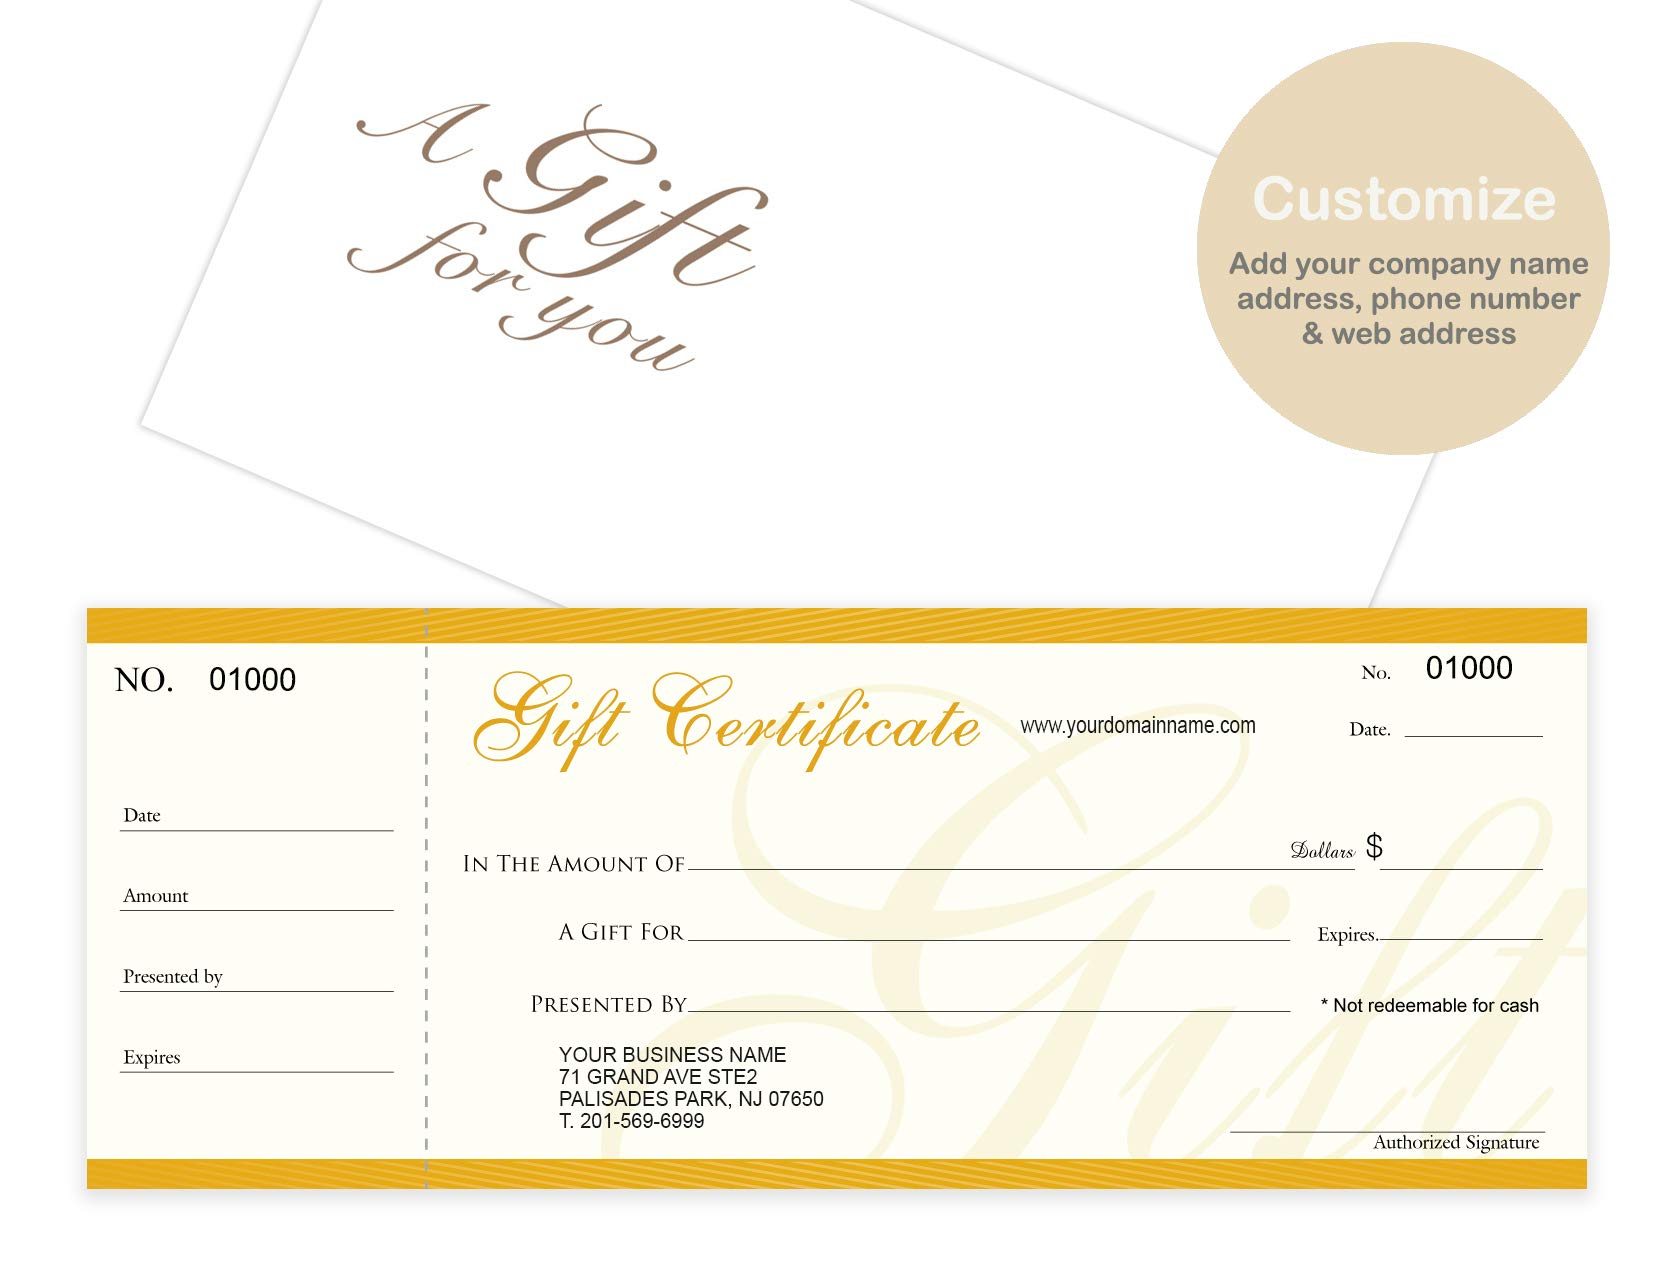 Custom Gift Certificates Cards with Envelopes 100 set - NJ67SB- Gift Coupons,Vouchers for Small Business,Spa,Makeup,Hair Beauty Salon,Restaurant,Wedding Bridal,Baby Shower,Holiday,Christmas,Birthday by IMPACTONLINEPRINTING